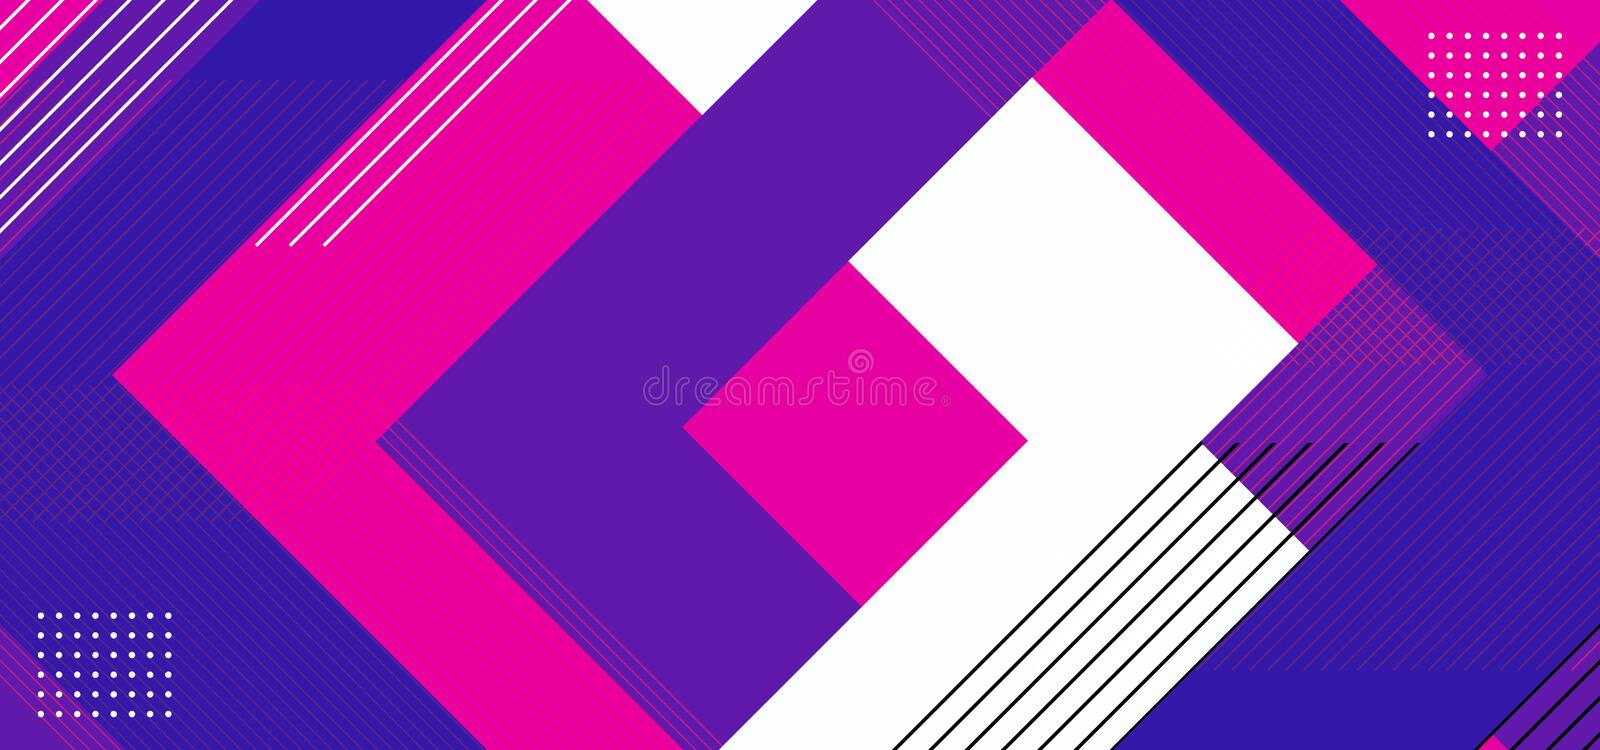 Geometric background abstract with triangle composition design. Purple, pink, blue, and white colorful vector illustration vector illustration